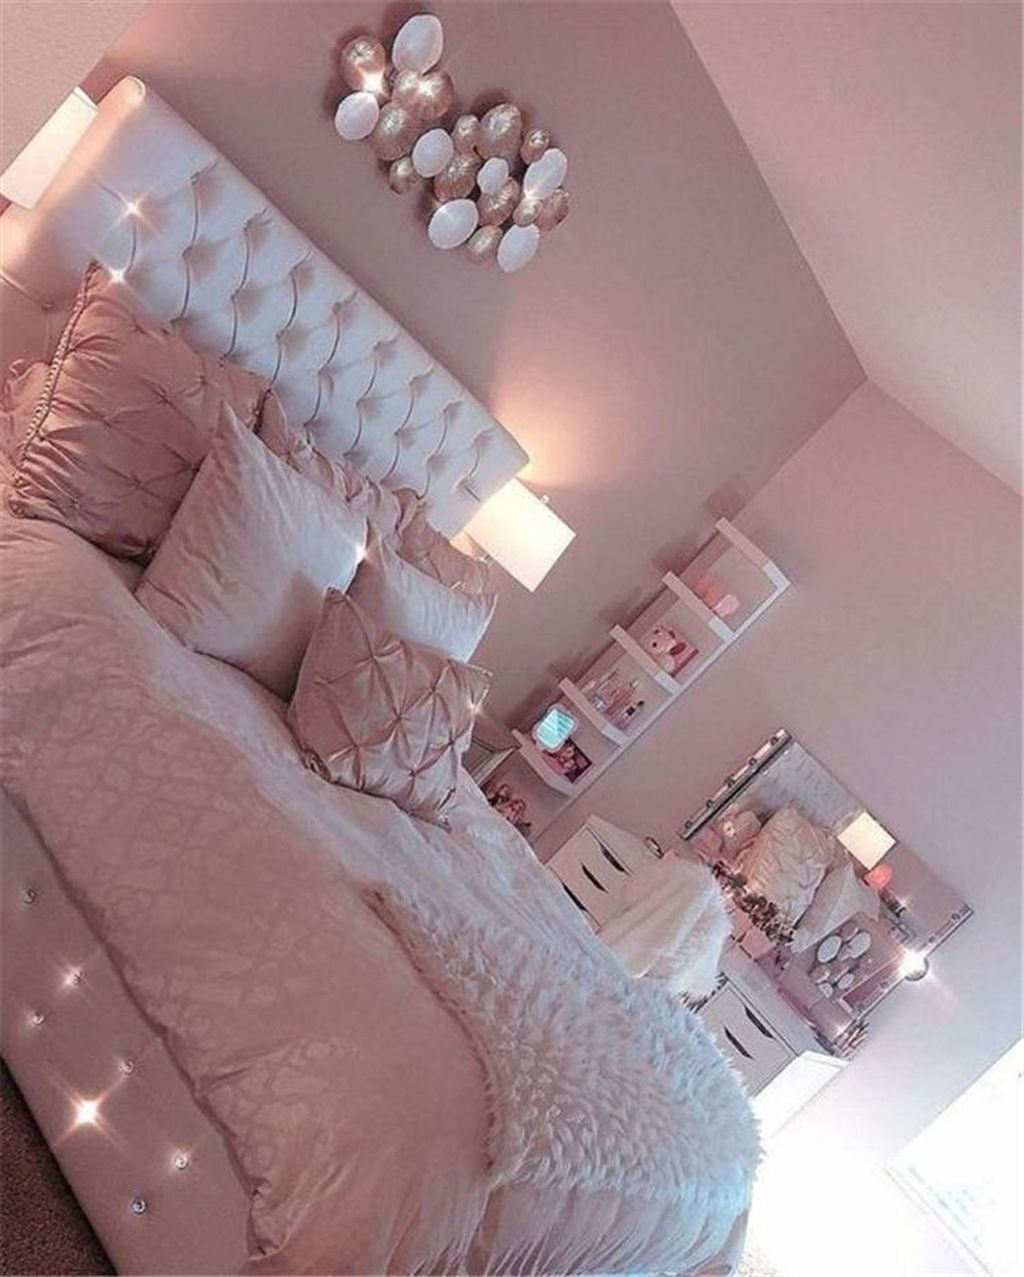 Awesome 34 Inspiring Diy Room Decor Ideas For Teens Girls More At Https Homyfeed Com 2019 04 11 34 Insp Rosa Wohnzimmer Schlafzimmer Design Wohnzimmer Dekor